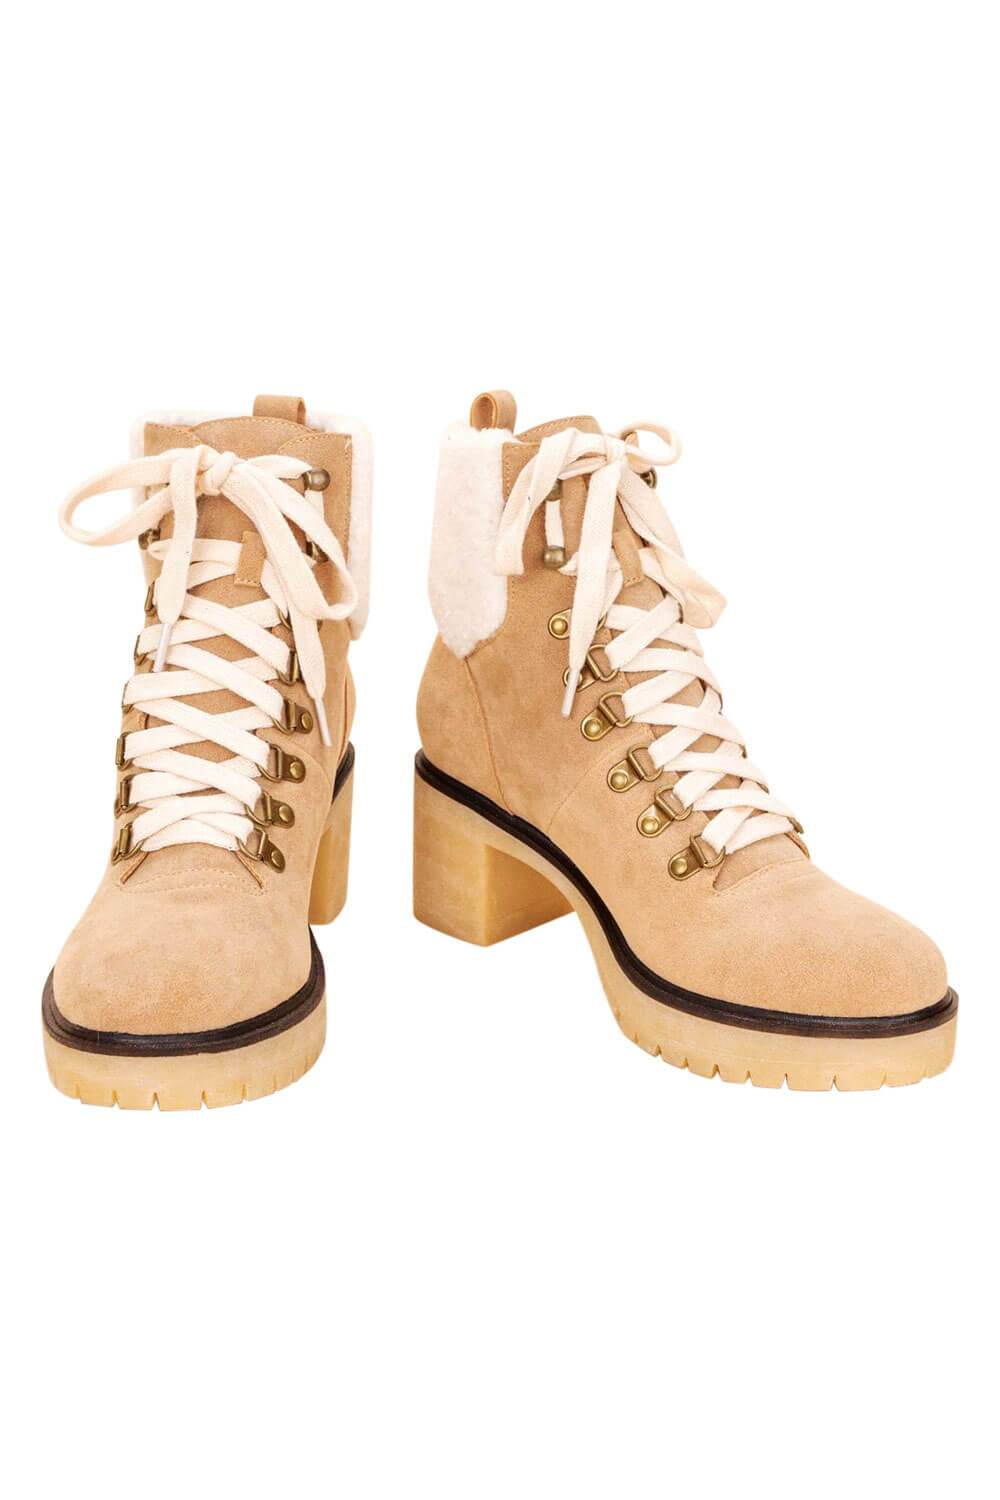 Monroe Shearling Military Bootie khaki MILK MONEY